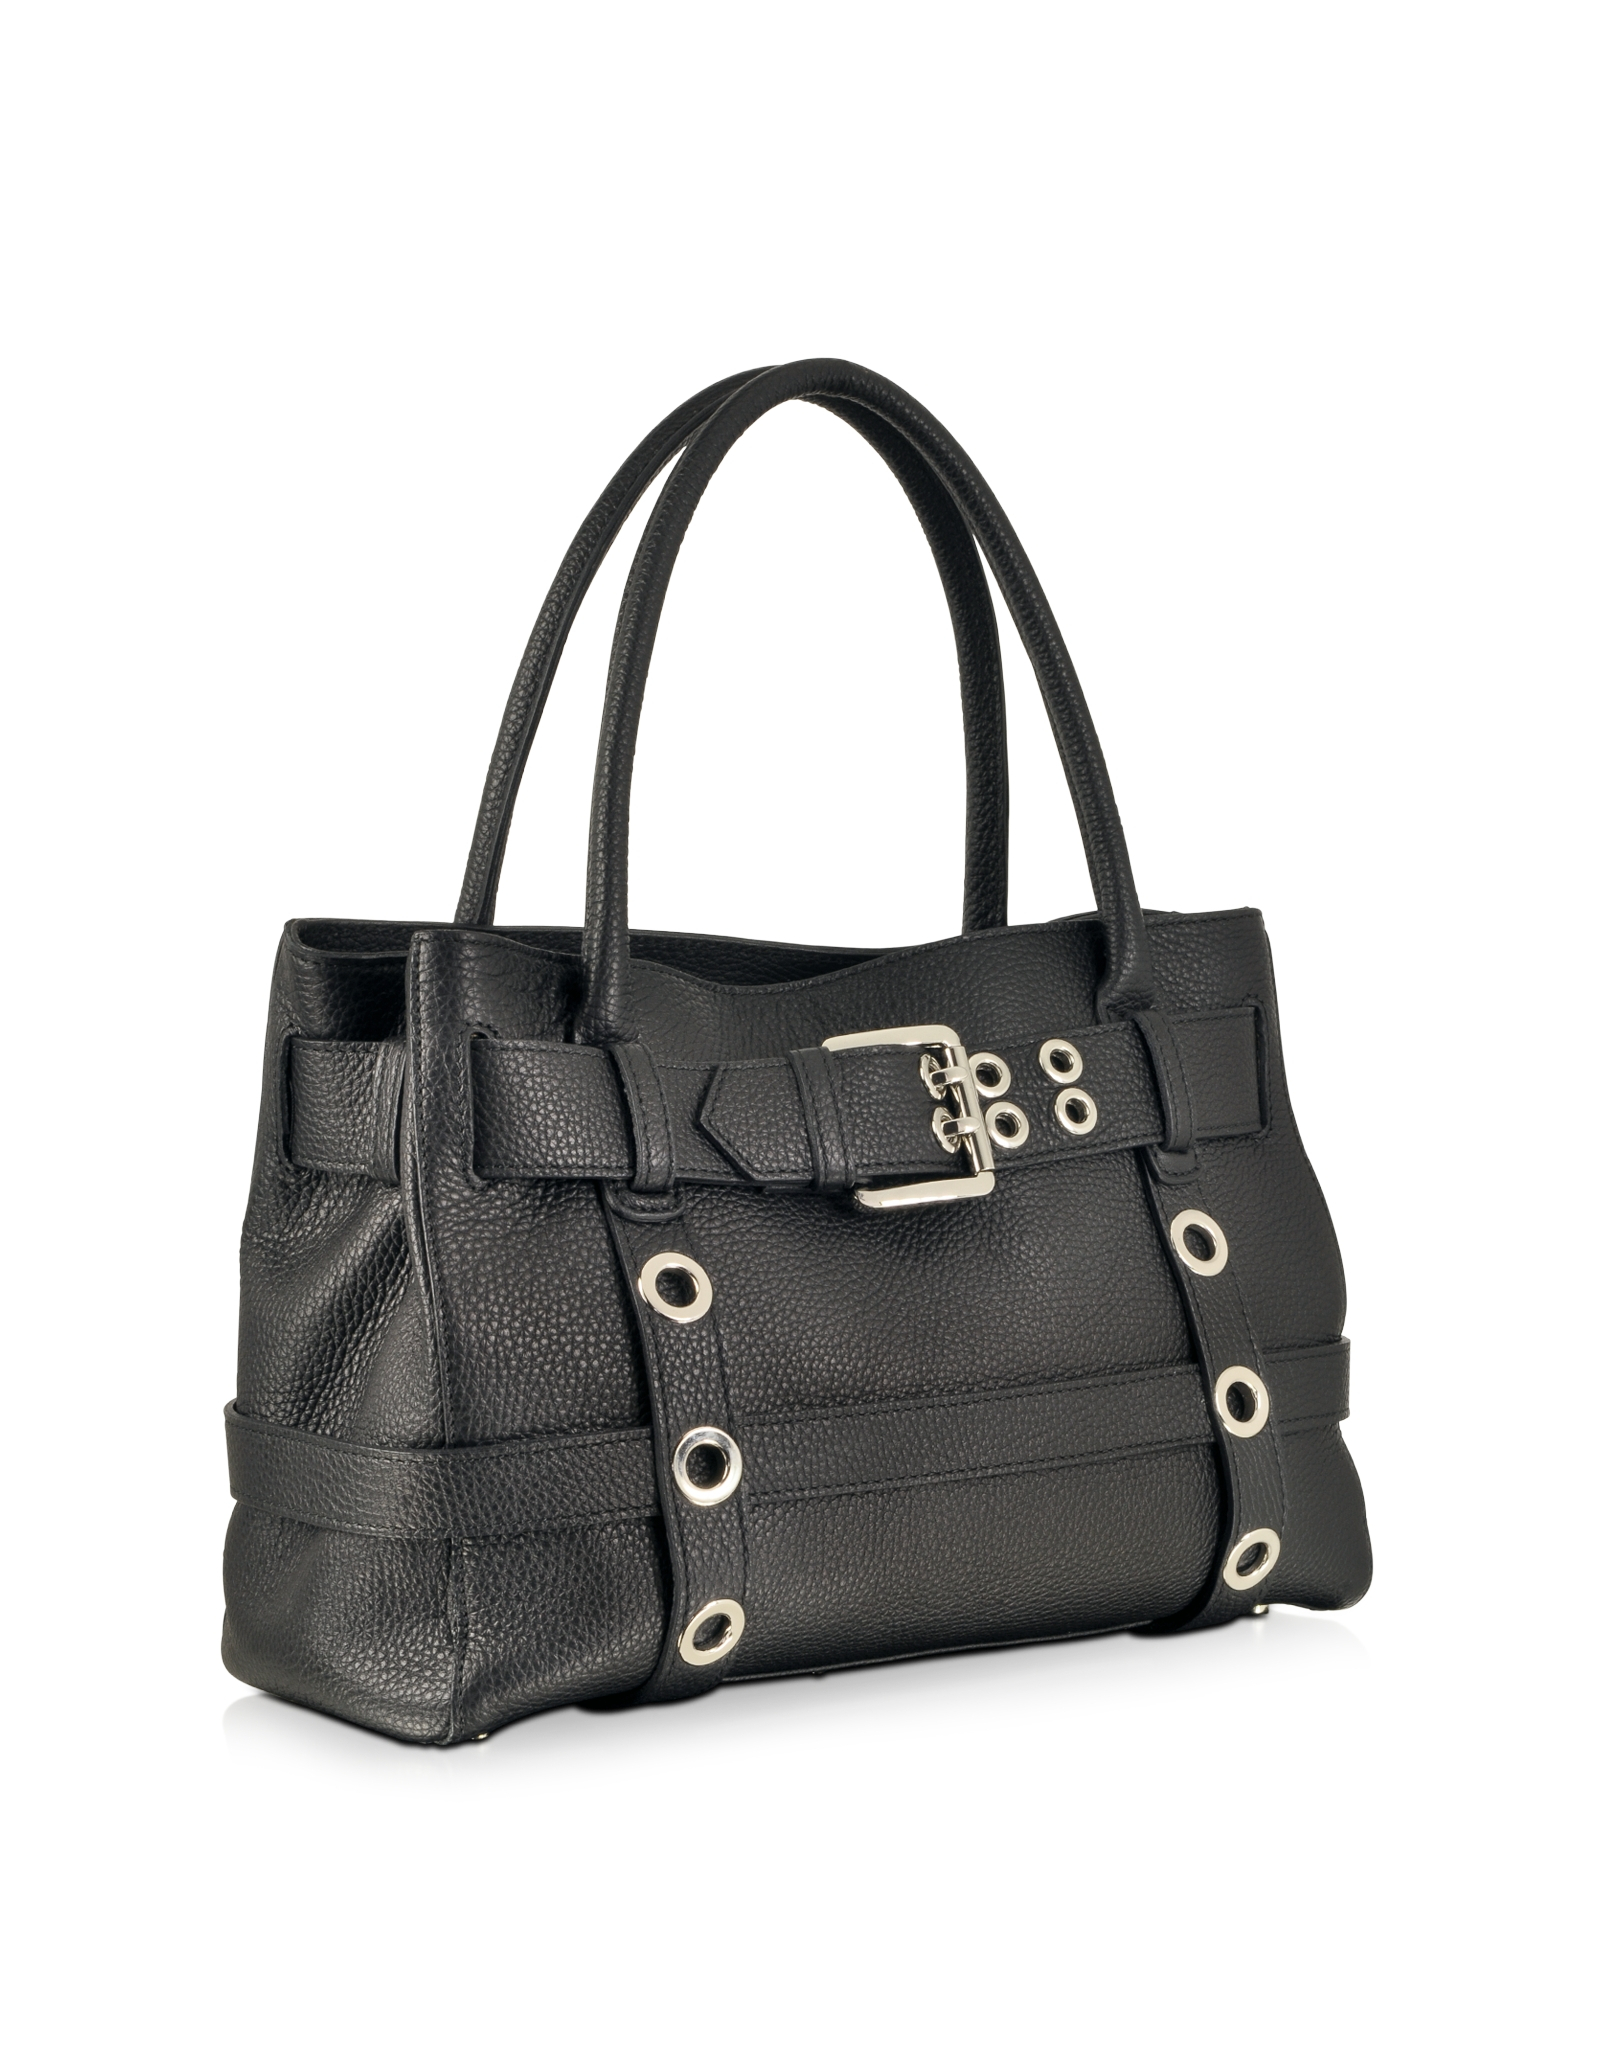 Shop a great selection of Shoulder Bags for Women at Nordstrom Rack. Find designer Shoulder Bags for Women up to 70% off and get free shipping on orders over $ Nordstrom Rack HauteLook. Log In / Sign Up; Robertson Leather Shoulder Bag. The Sak. Robertson Leather Shoulder Bag. $ $ 65% Off.